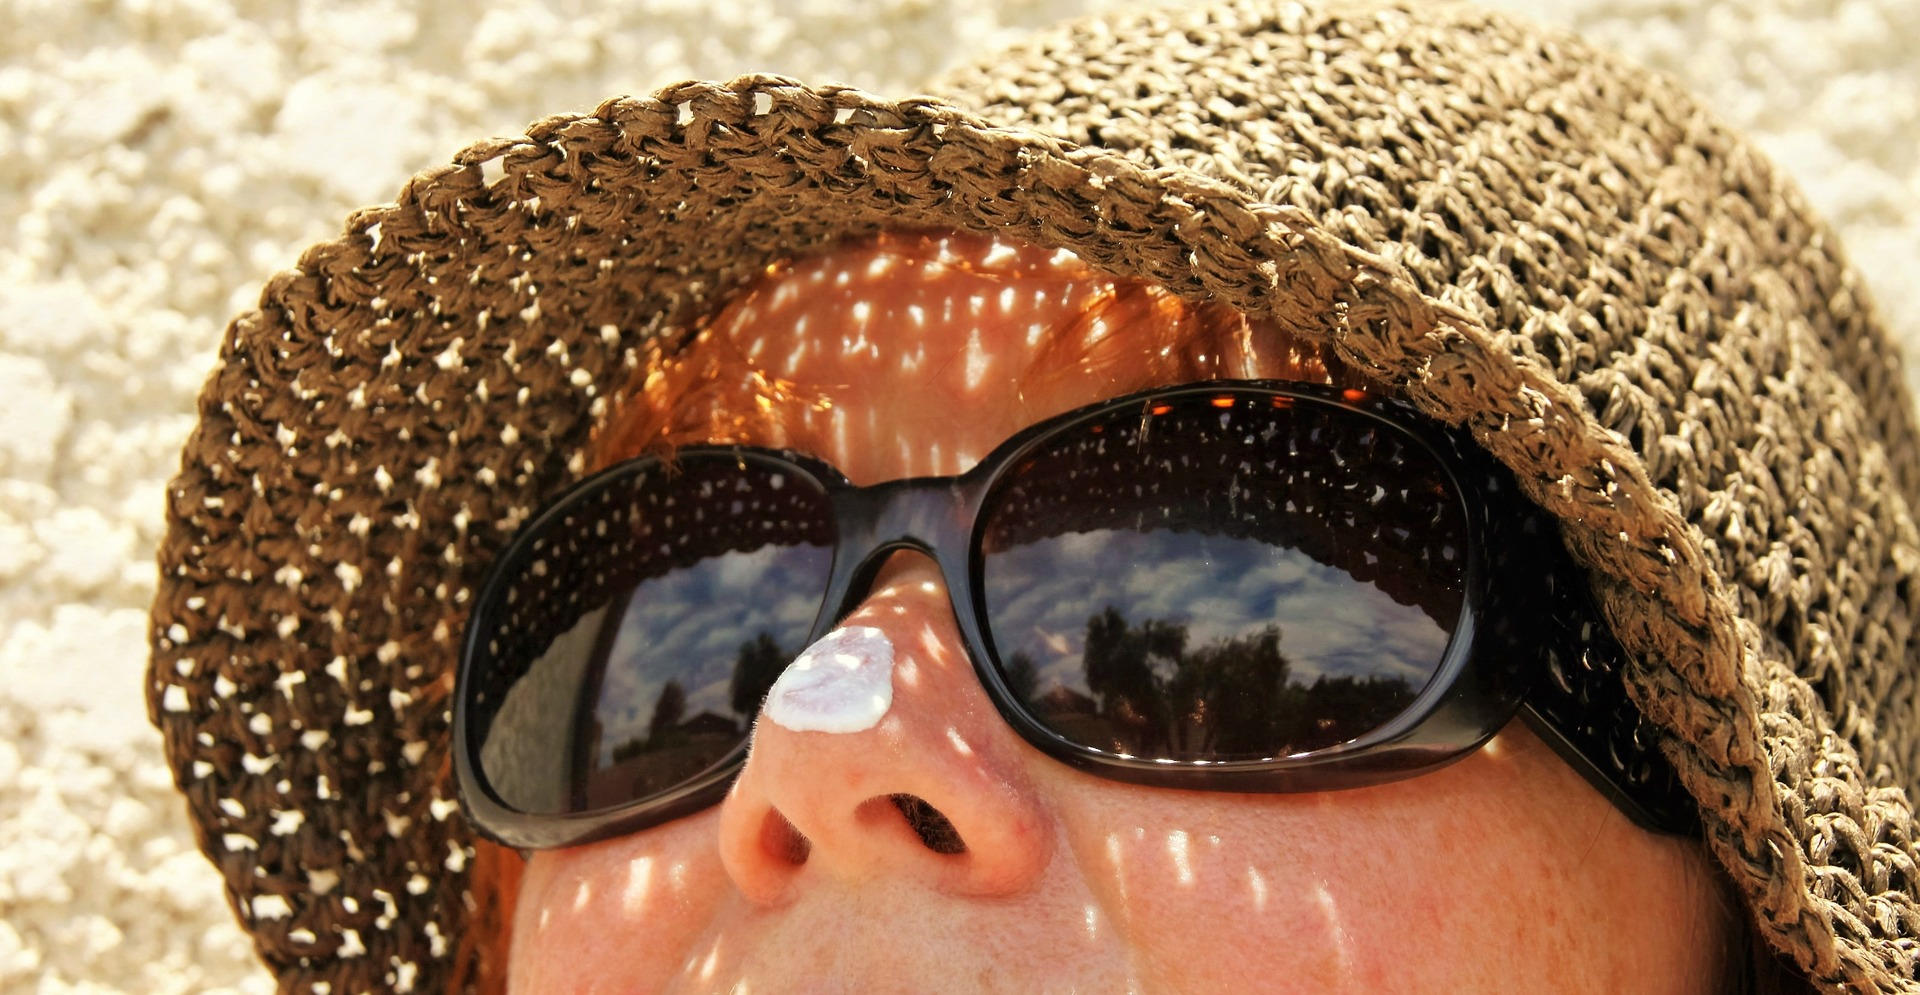 person wears hat, sunglasses, and sunscreen for protection against skin cancer